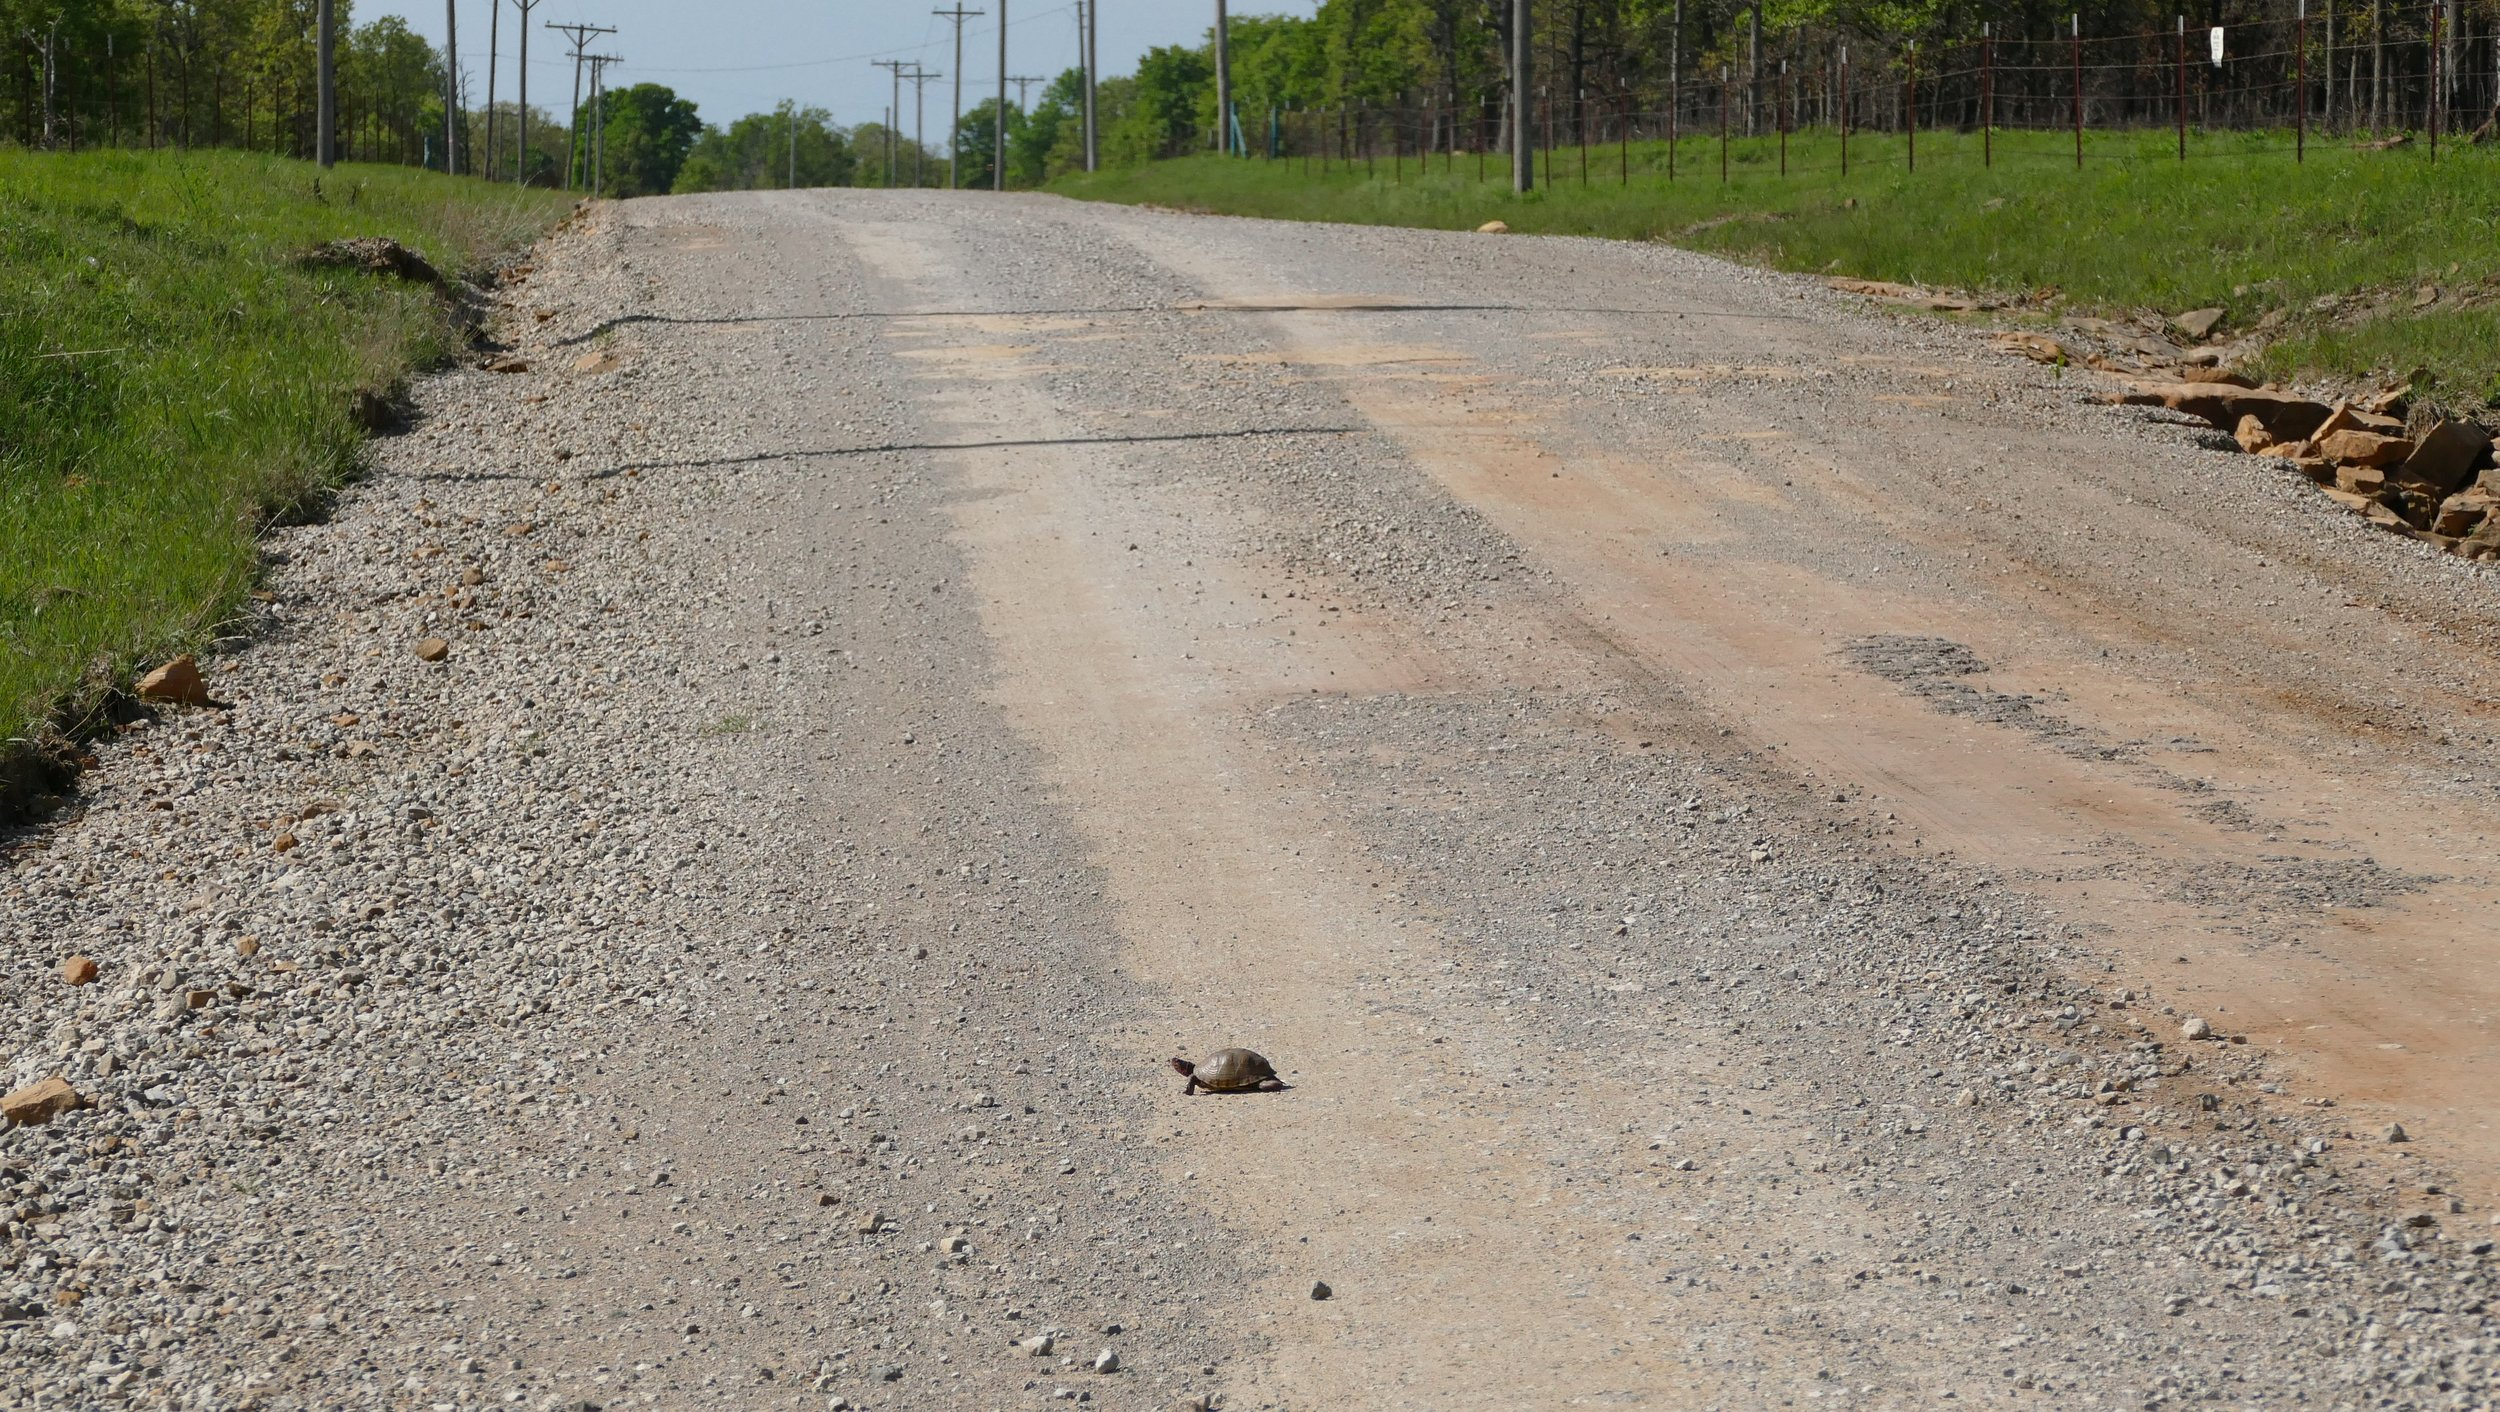 I am always so happy when I see live critters crossing the road. I always wait to make sure they cross safely, or move them if waiting is not an option.